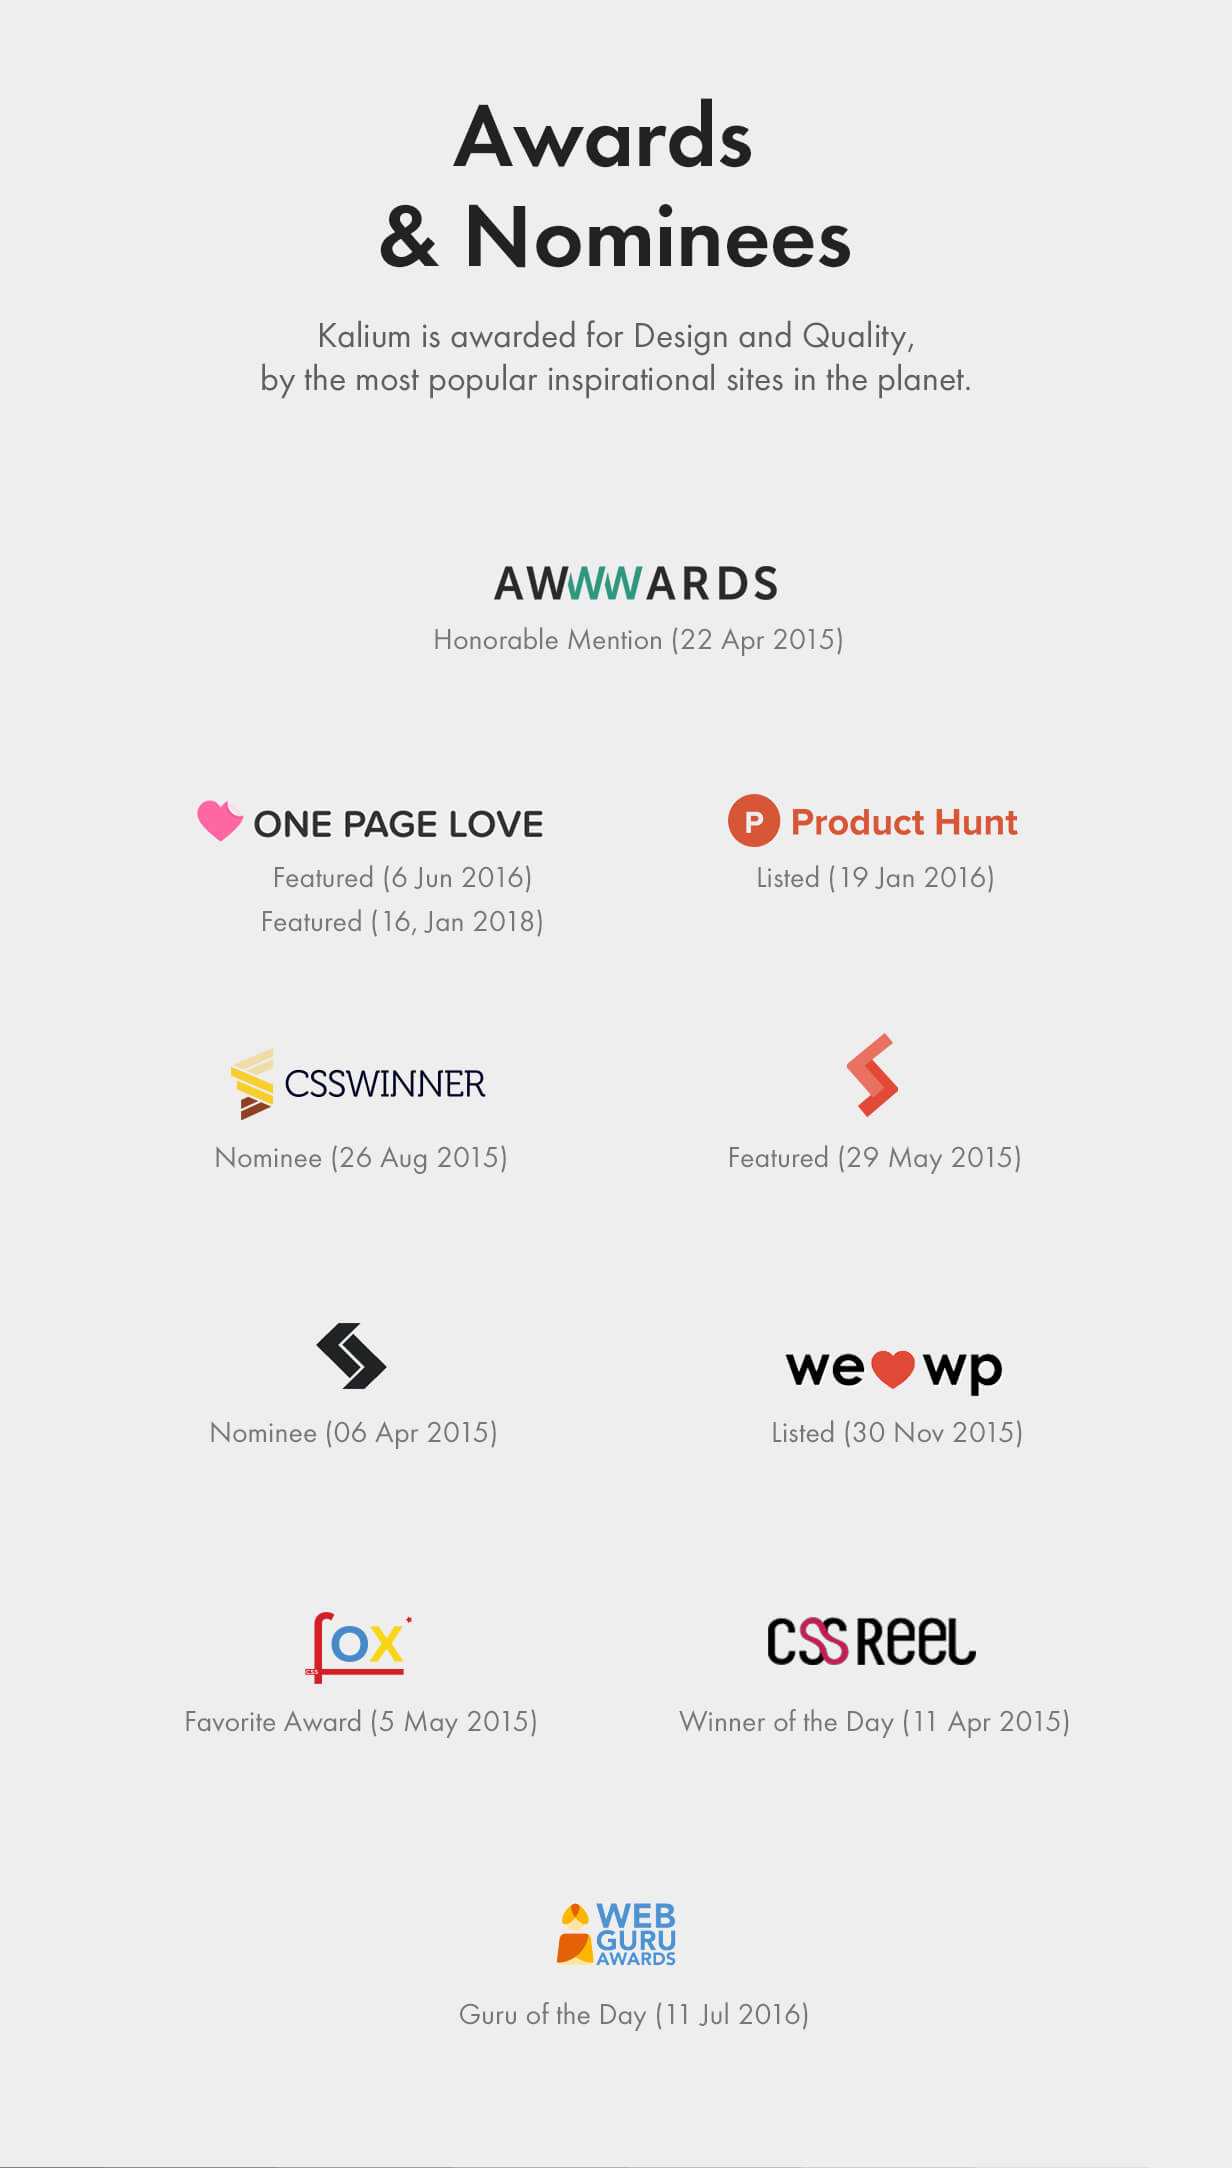 Awards and Nominees